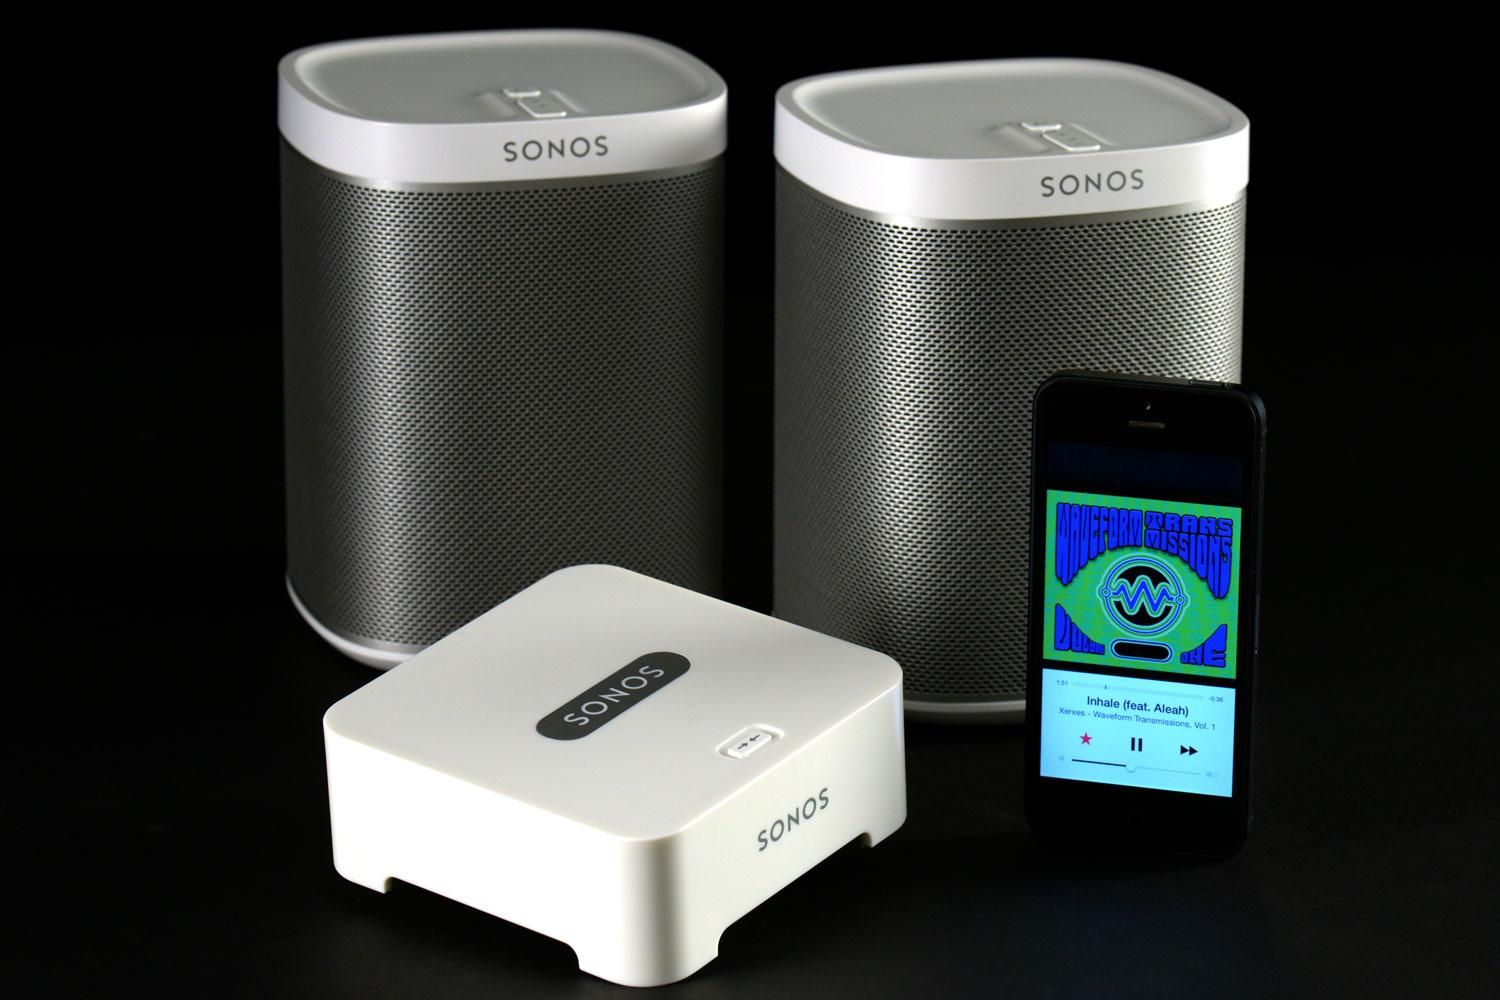 Sonos Smart Speakers Could One Day Integrate With All